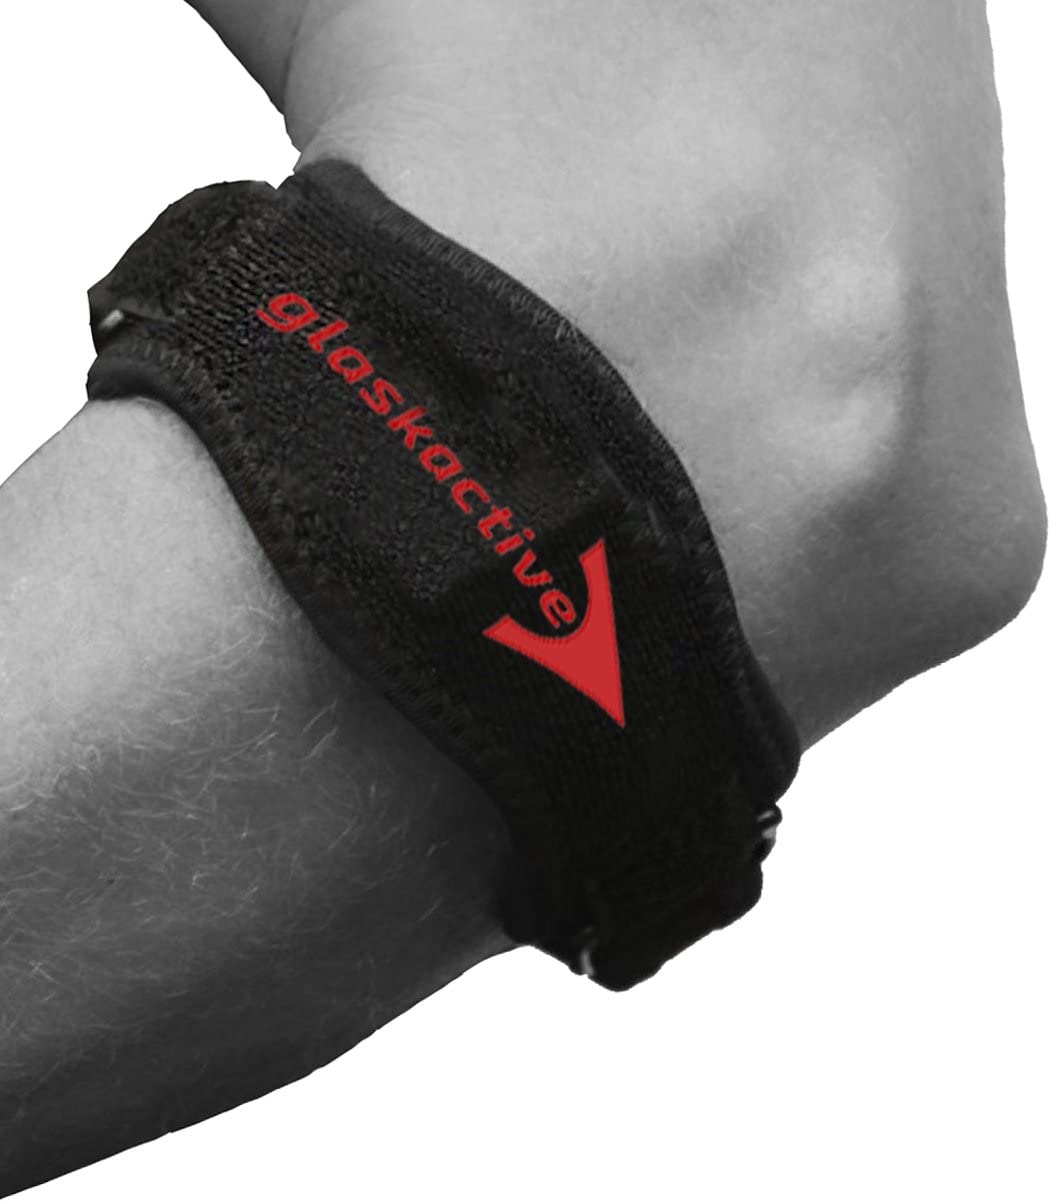 Forearm Tennis Elbow Brace Don't miss the campaign With All items in the store Pad Men for Compression Women